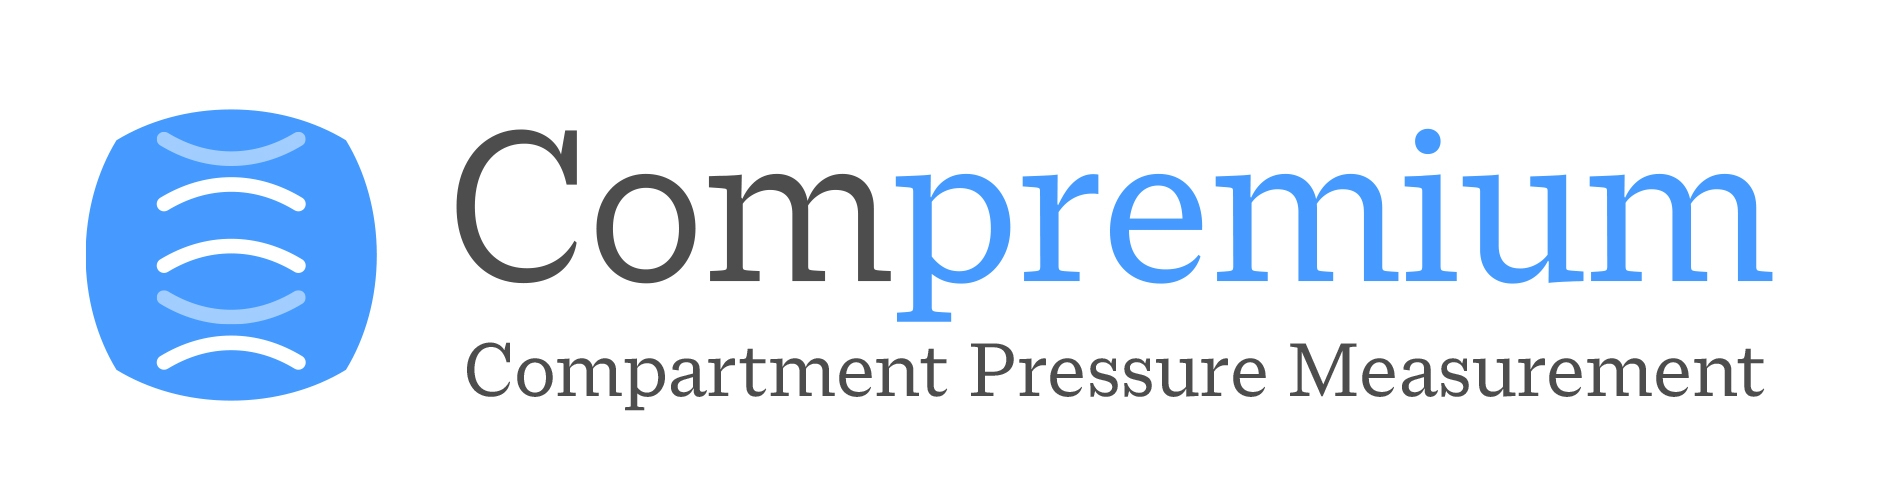 Compremium Compartment Pressure Measurement